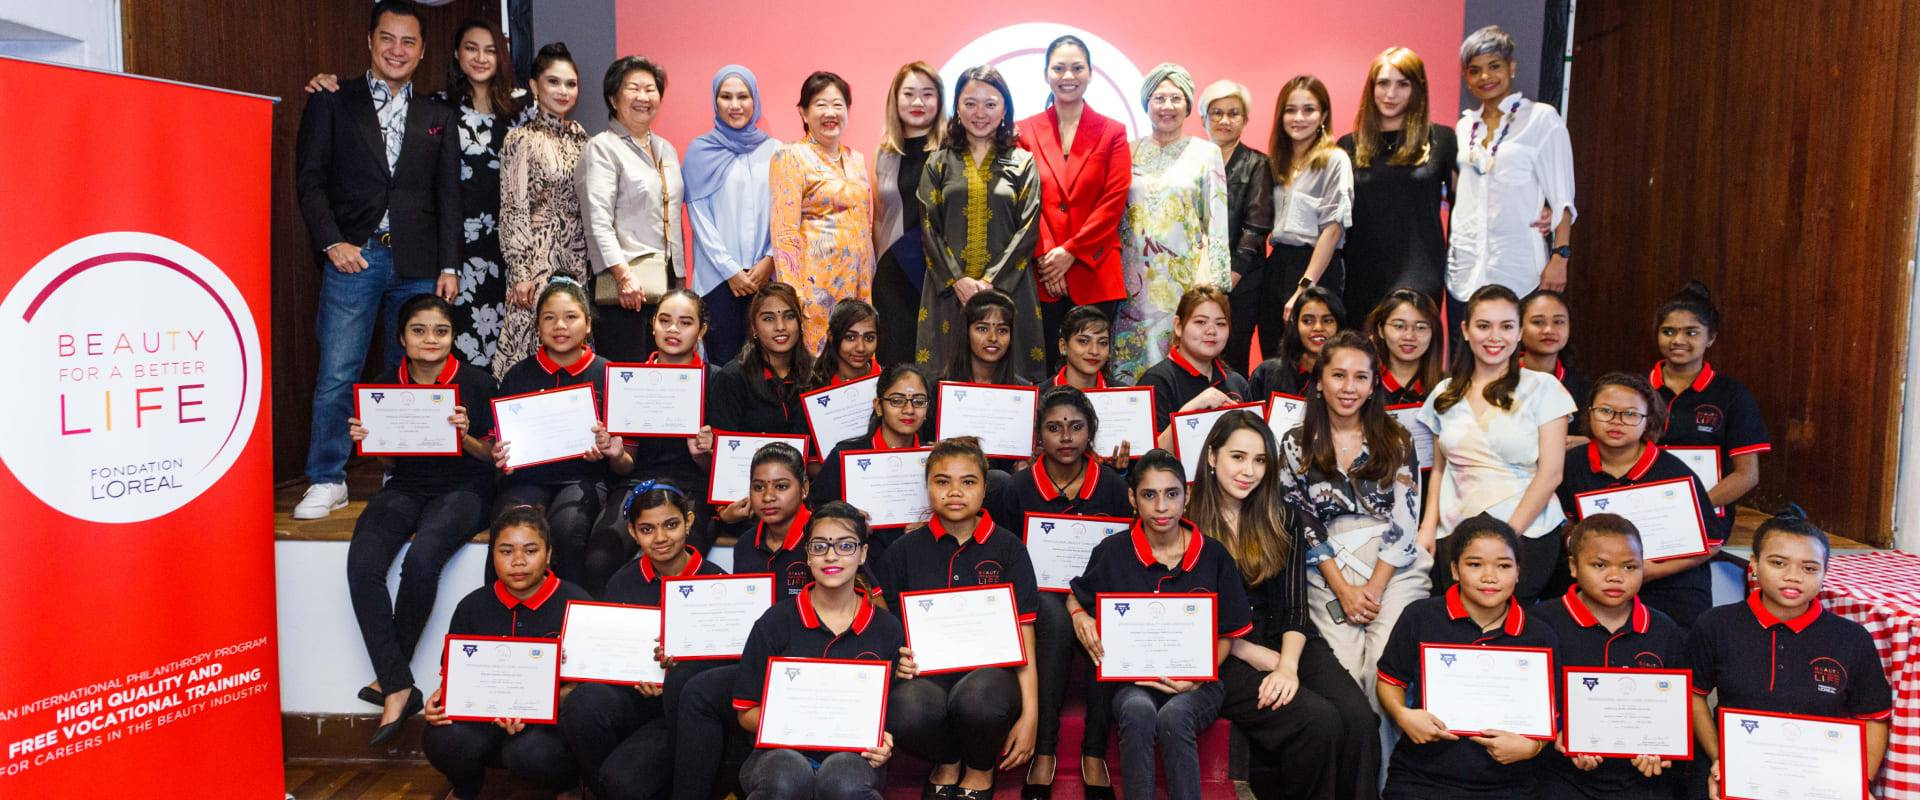 L'Oréal Malaysia helps young women build a better life through beauty